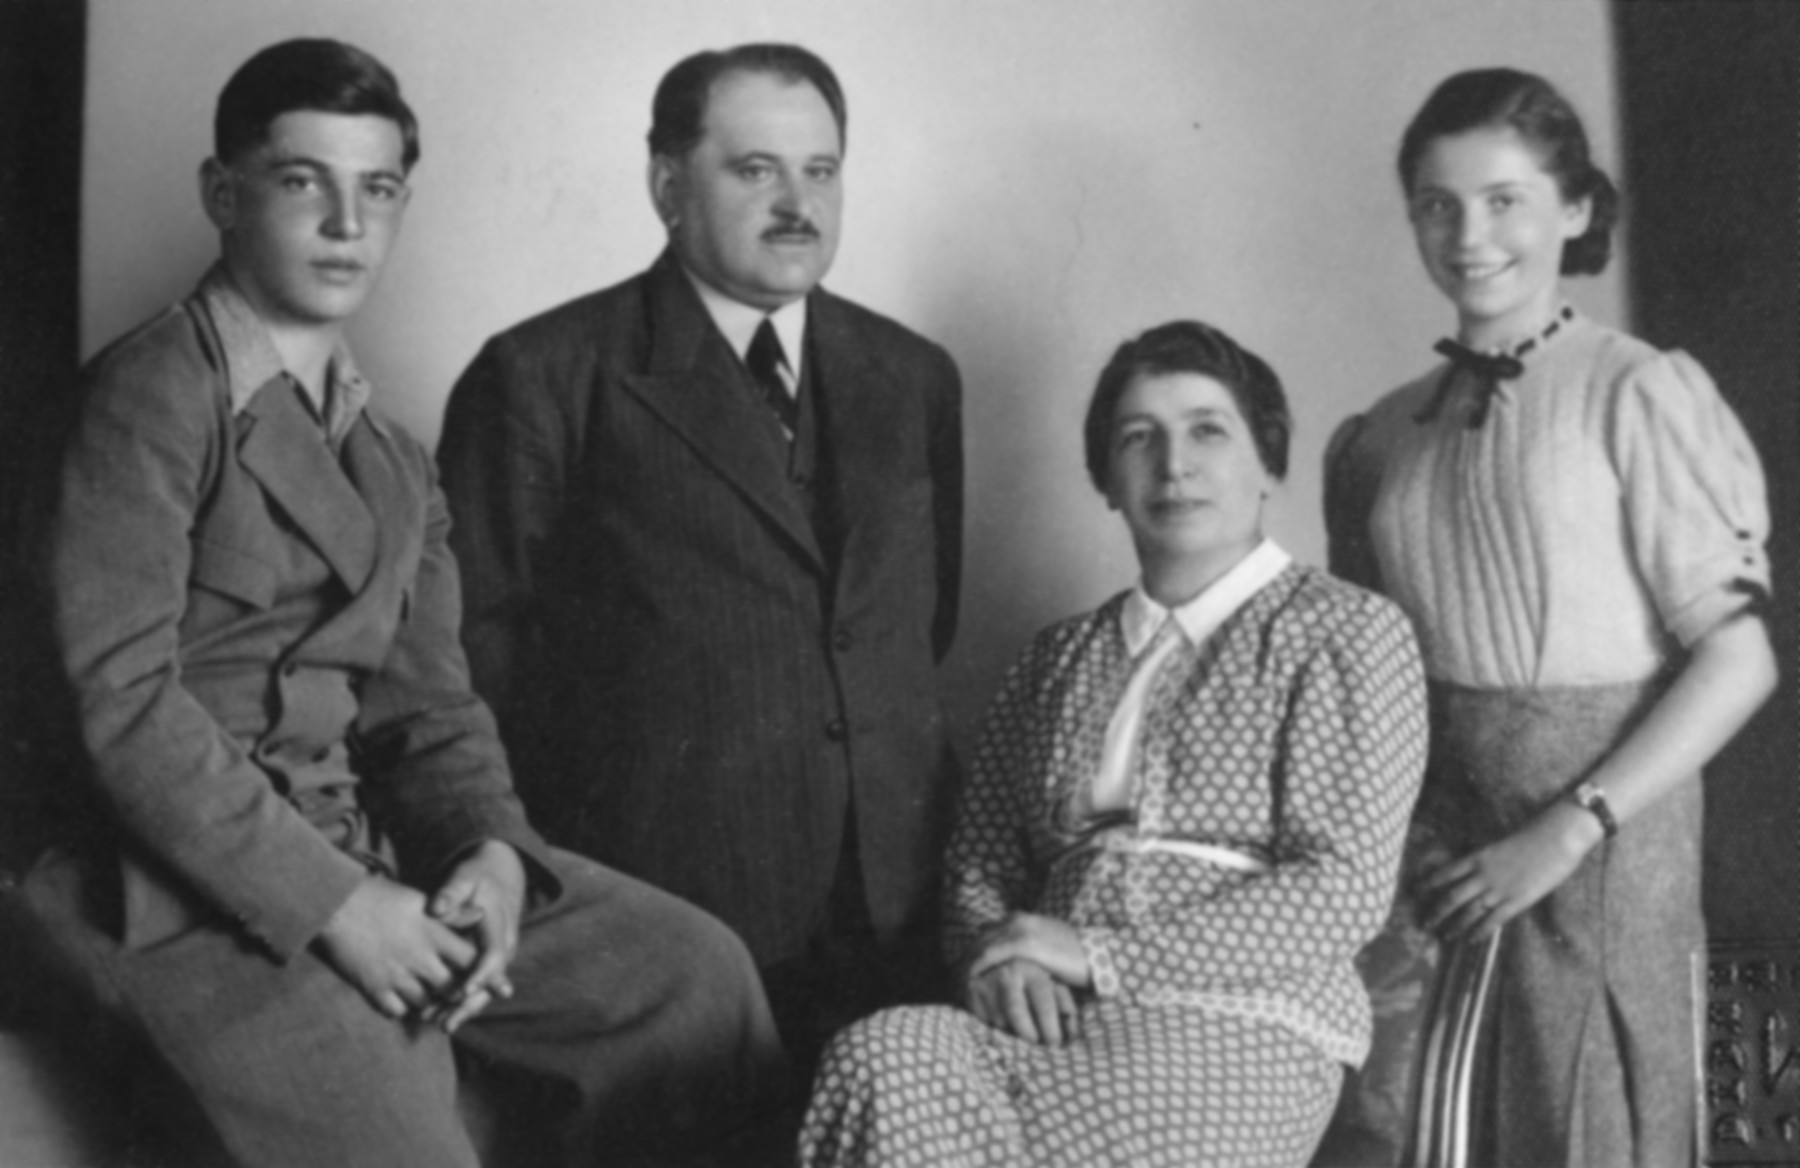 Studio portrait of a Czech-Jewish family.  Pictured are Edward and Mimi Schleissner and their parents.